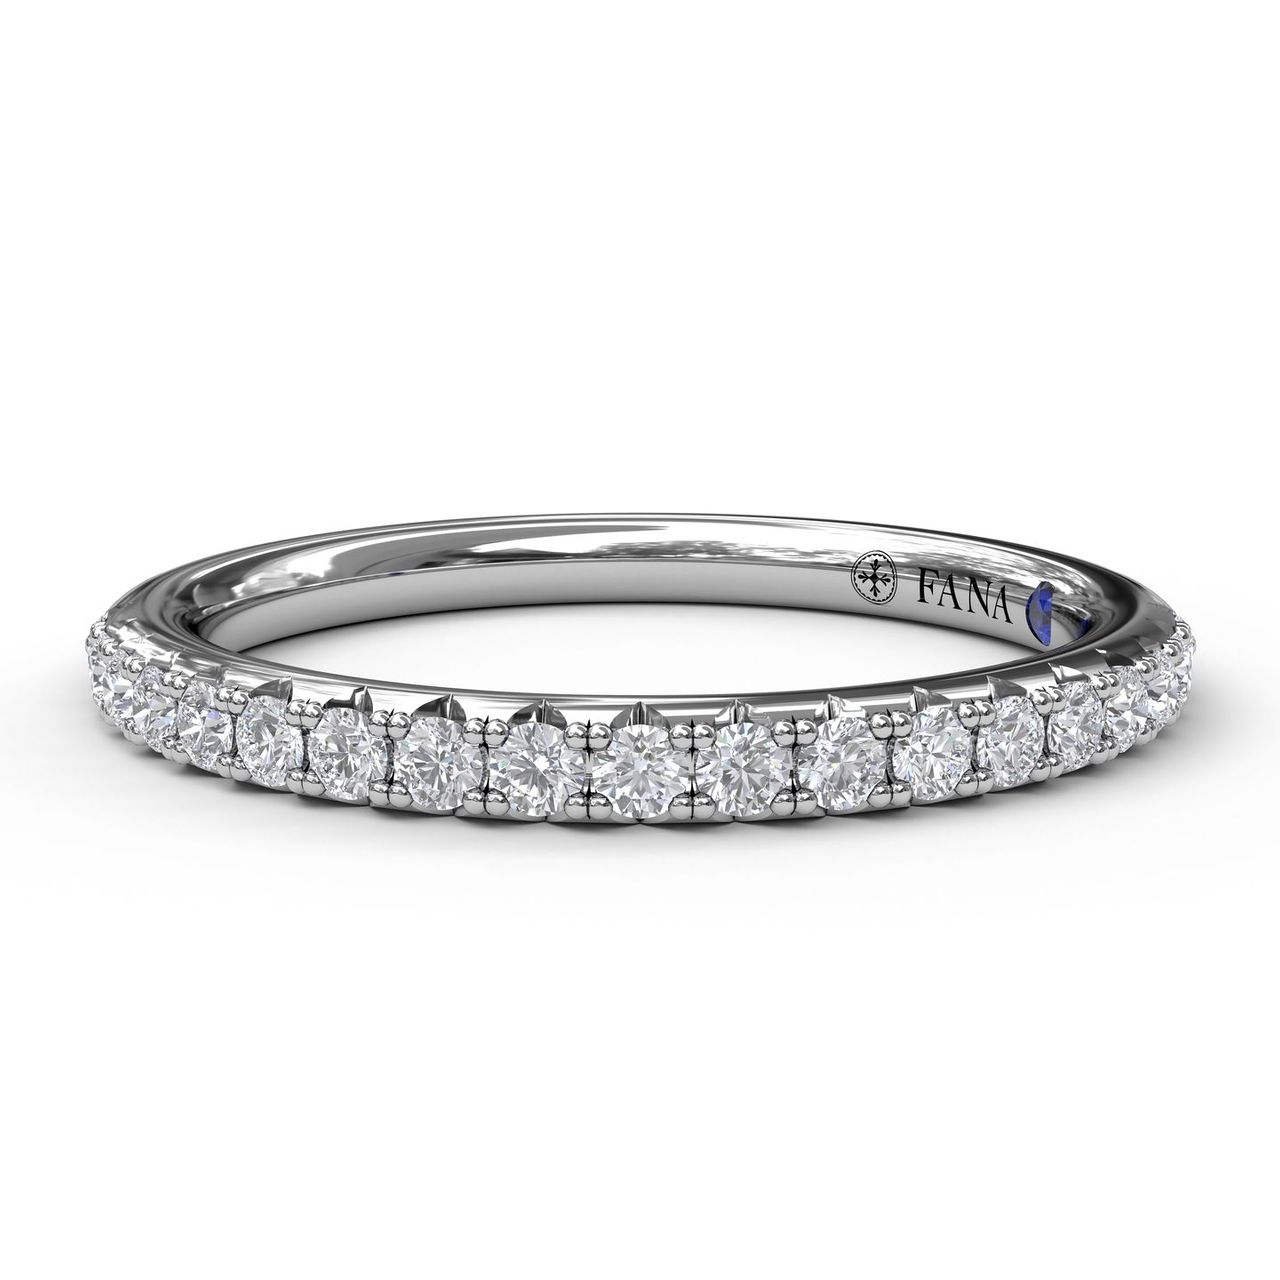 Women's Wedding Bands - Diamond Wedding Band